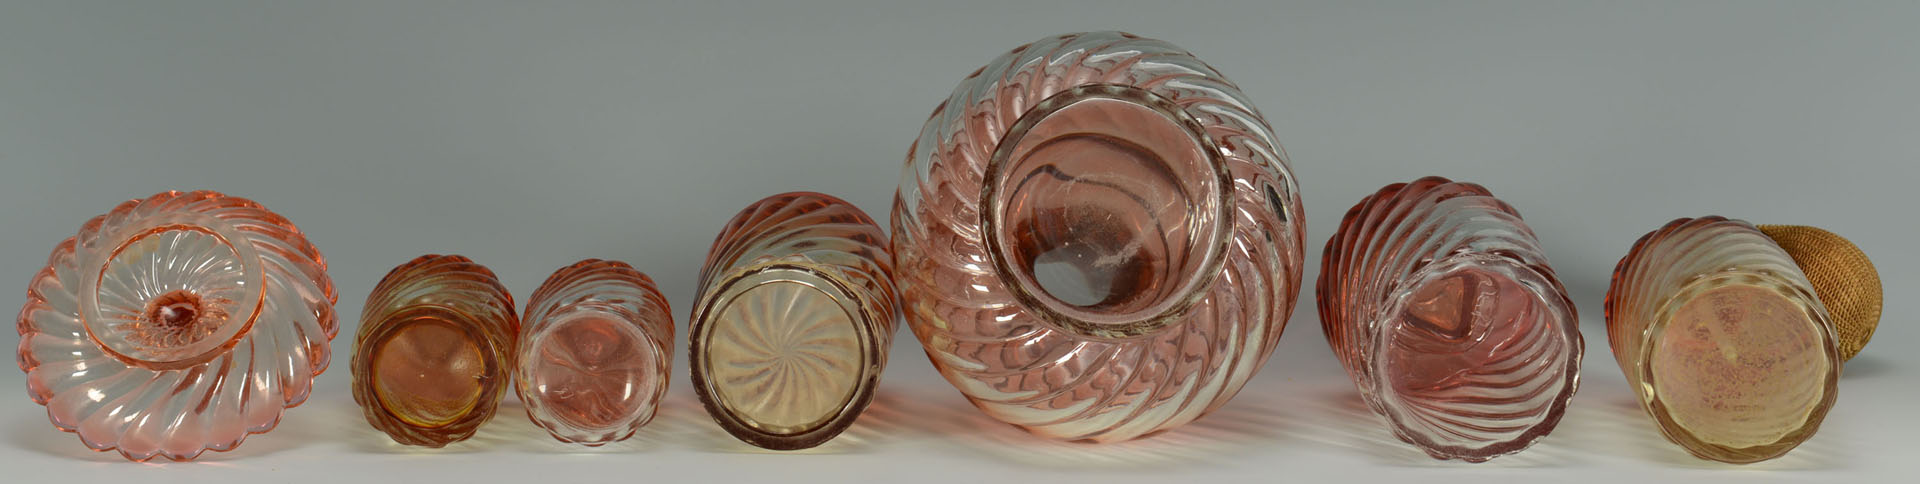 Lot 366: Lot of Baccarat Amberina Glass items, total 11